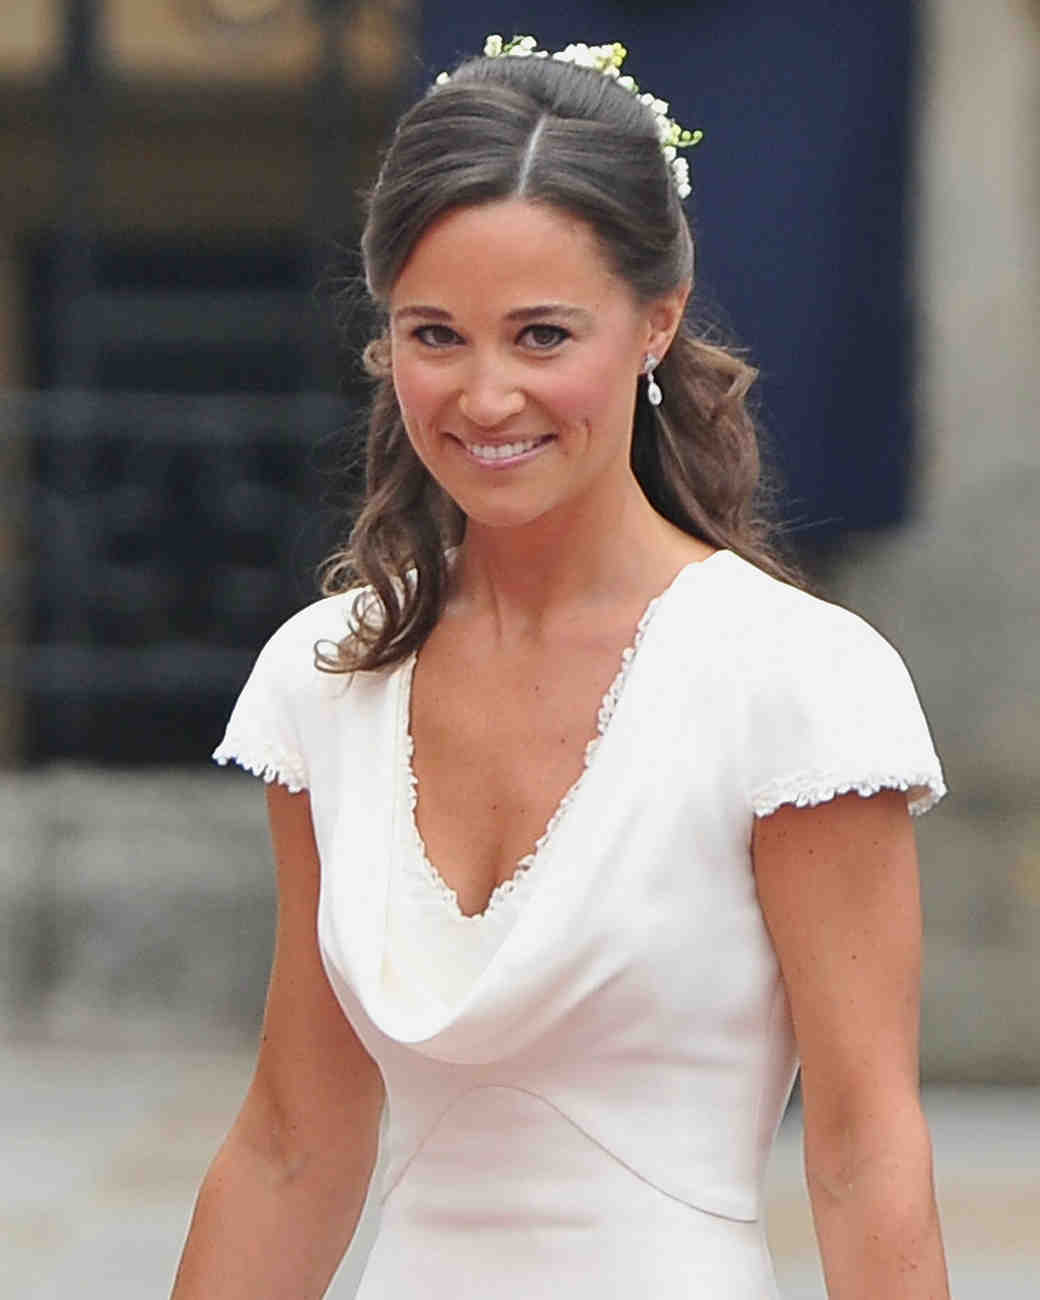 Pippa Middleton as Maid of Honor